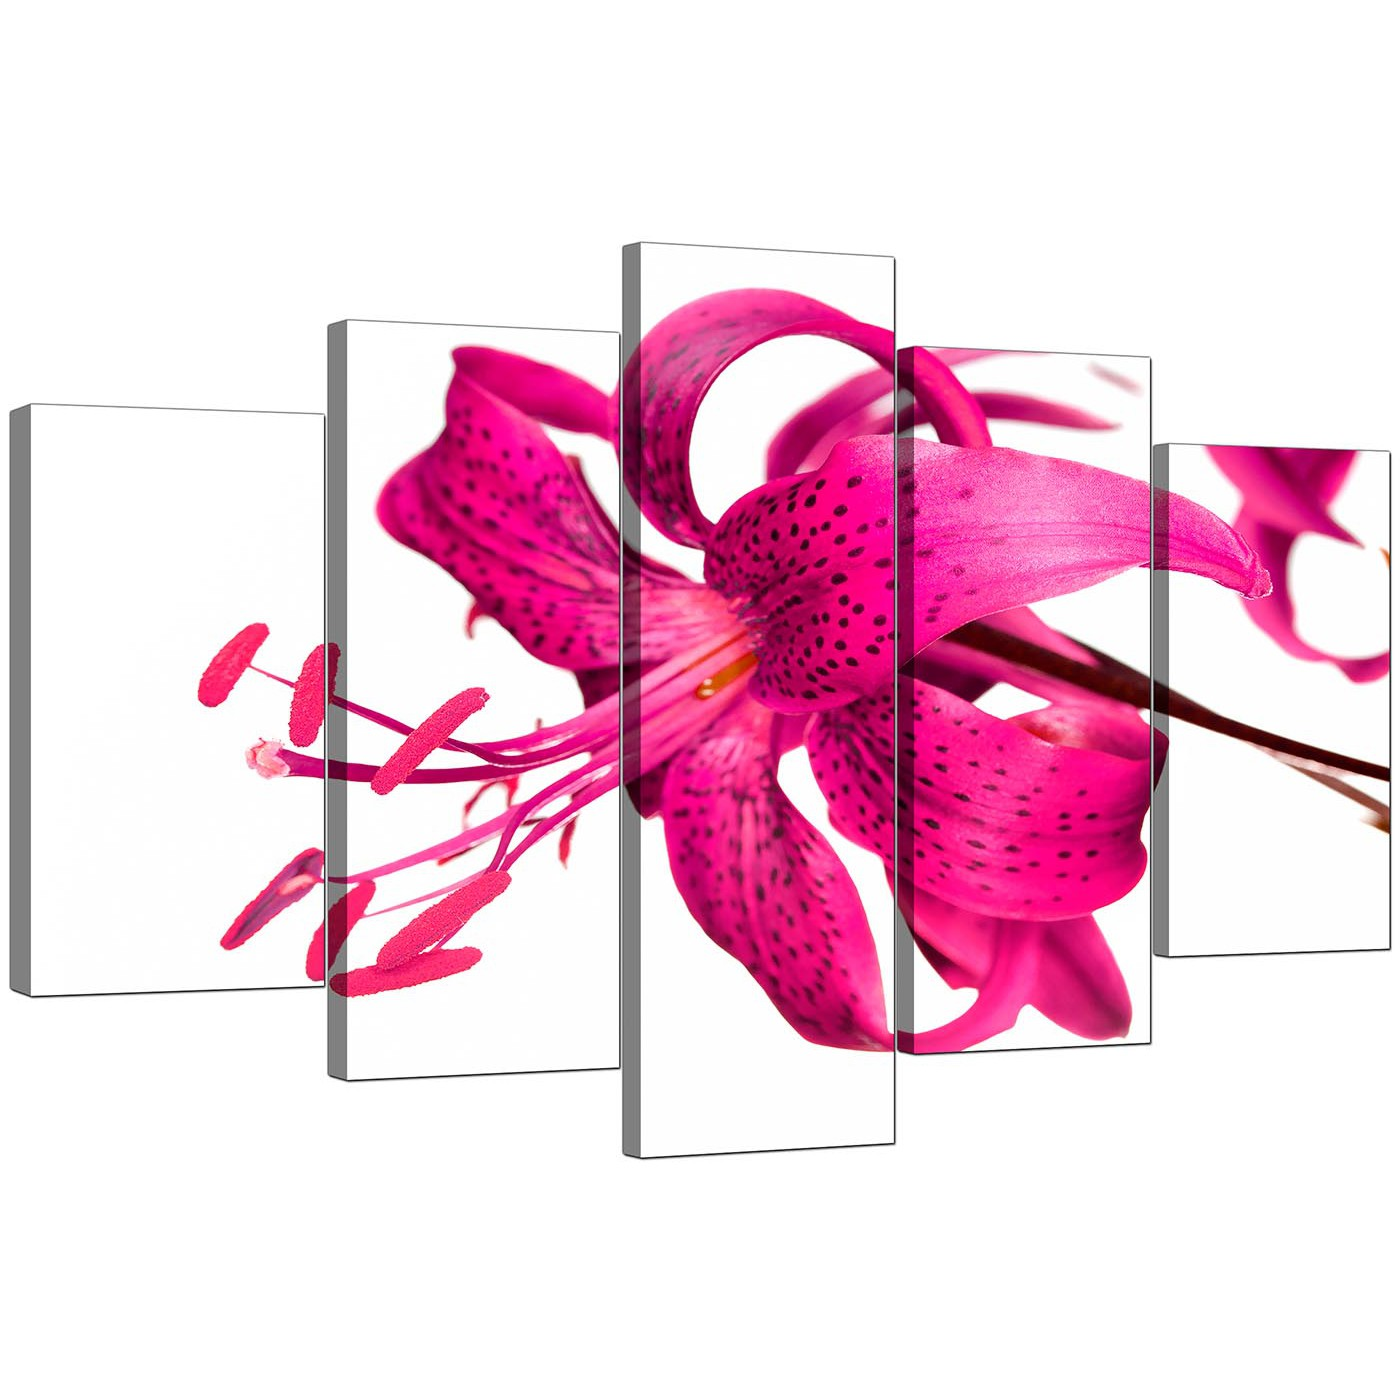 Extra Lily Canvas Wall Art Set of 5 in Pink